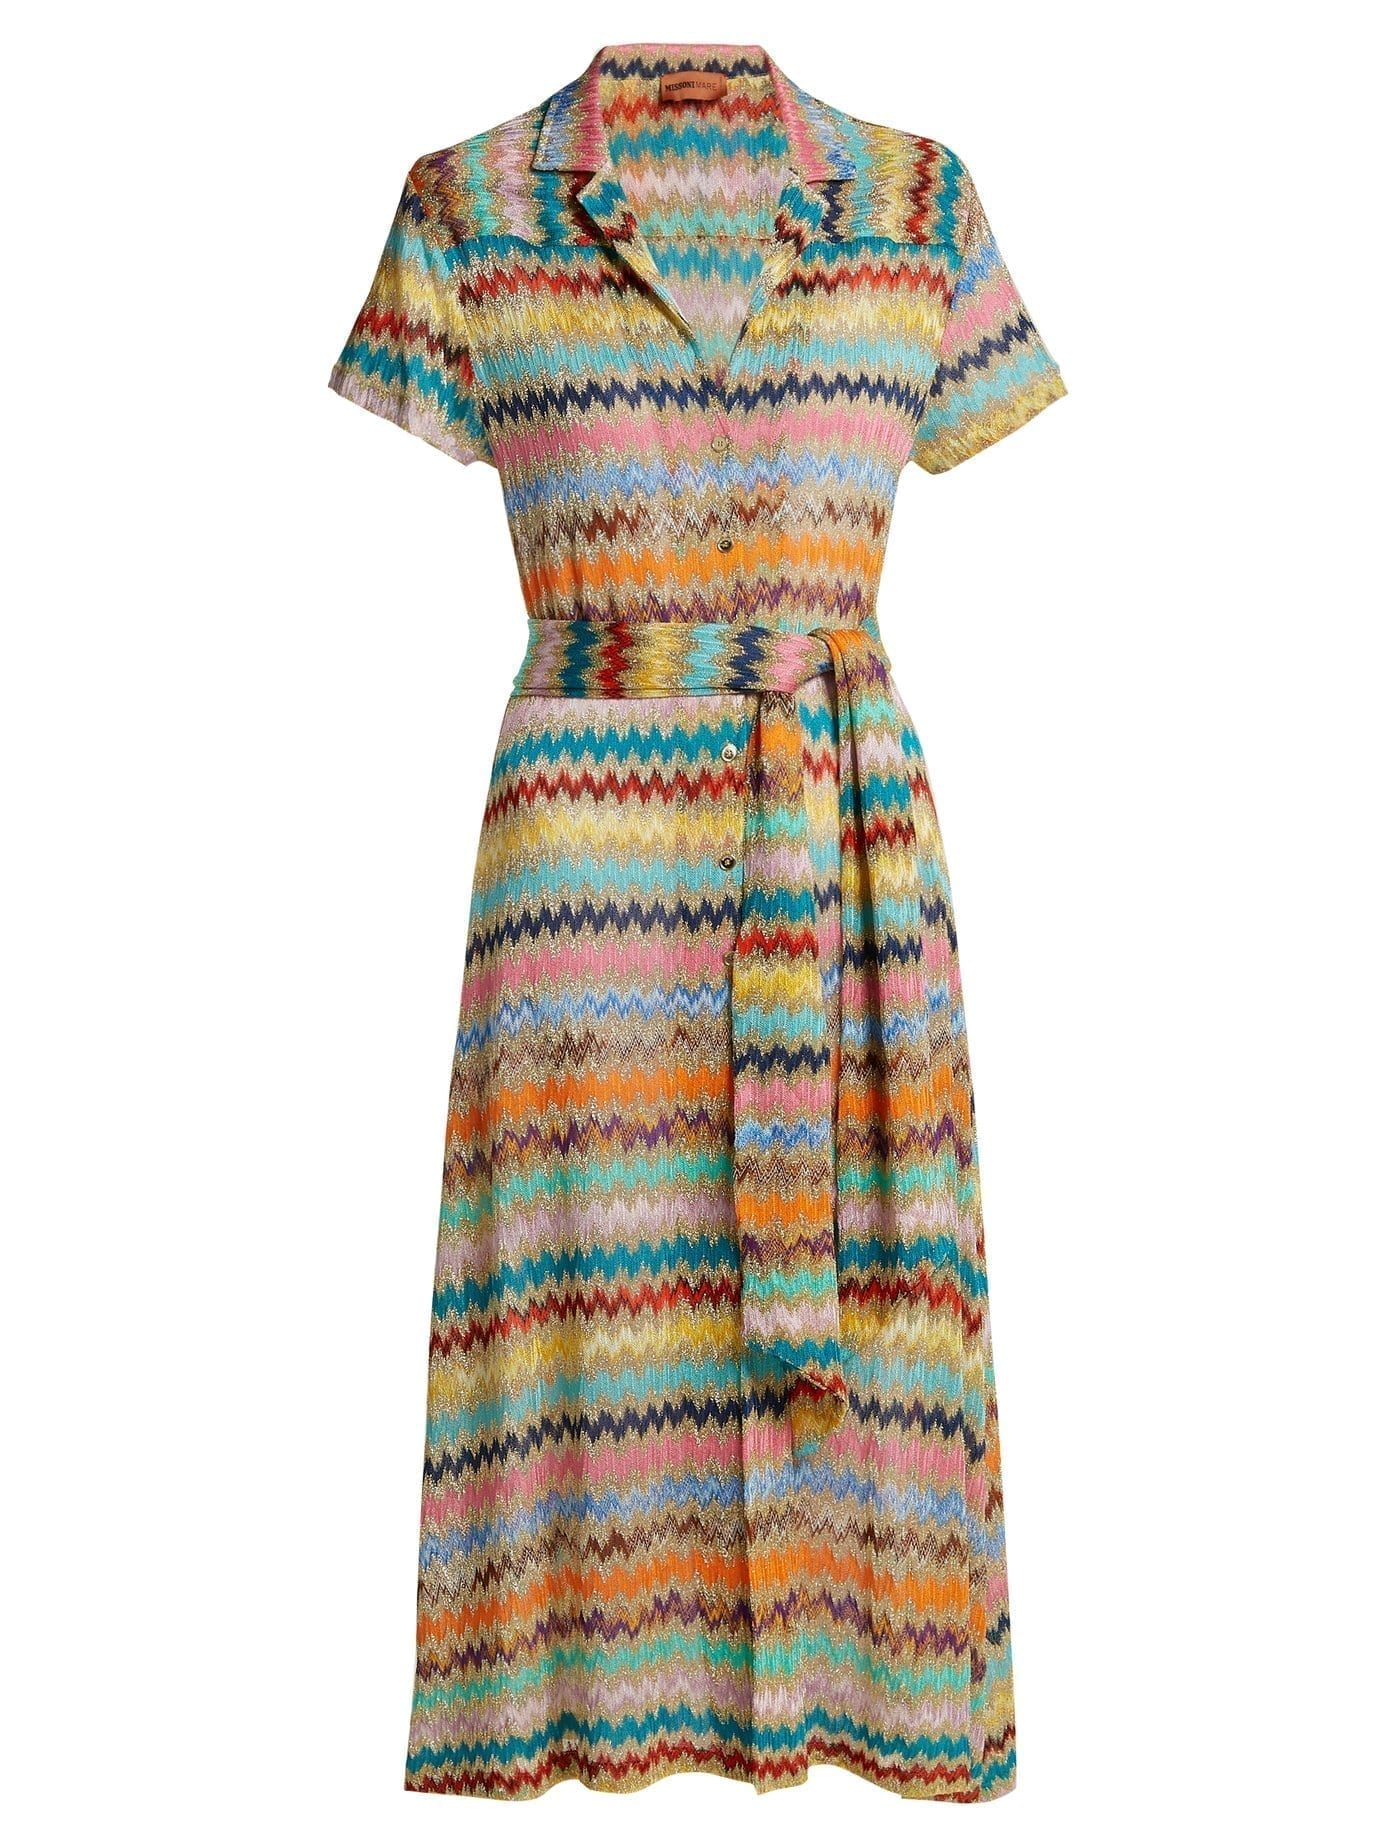 Missoni Mare Zigzag Knitted Gold Shirtdress We Select Dresses